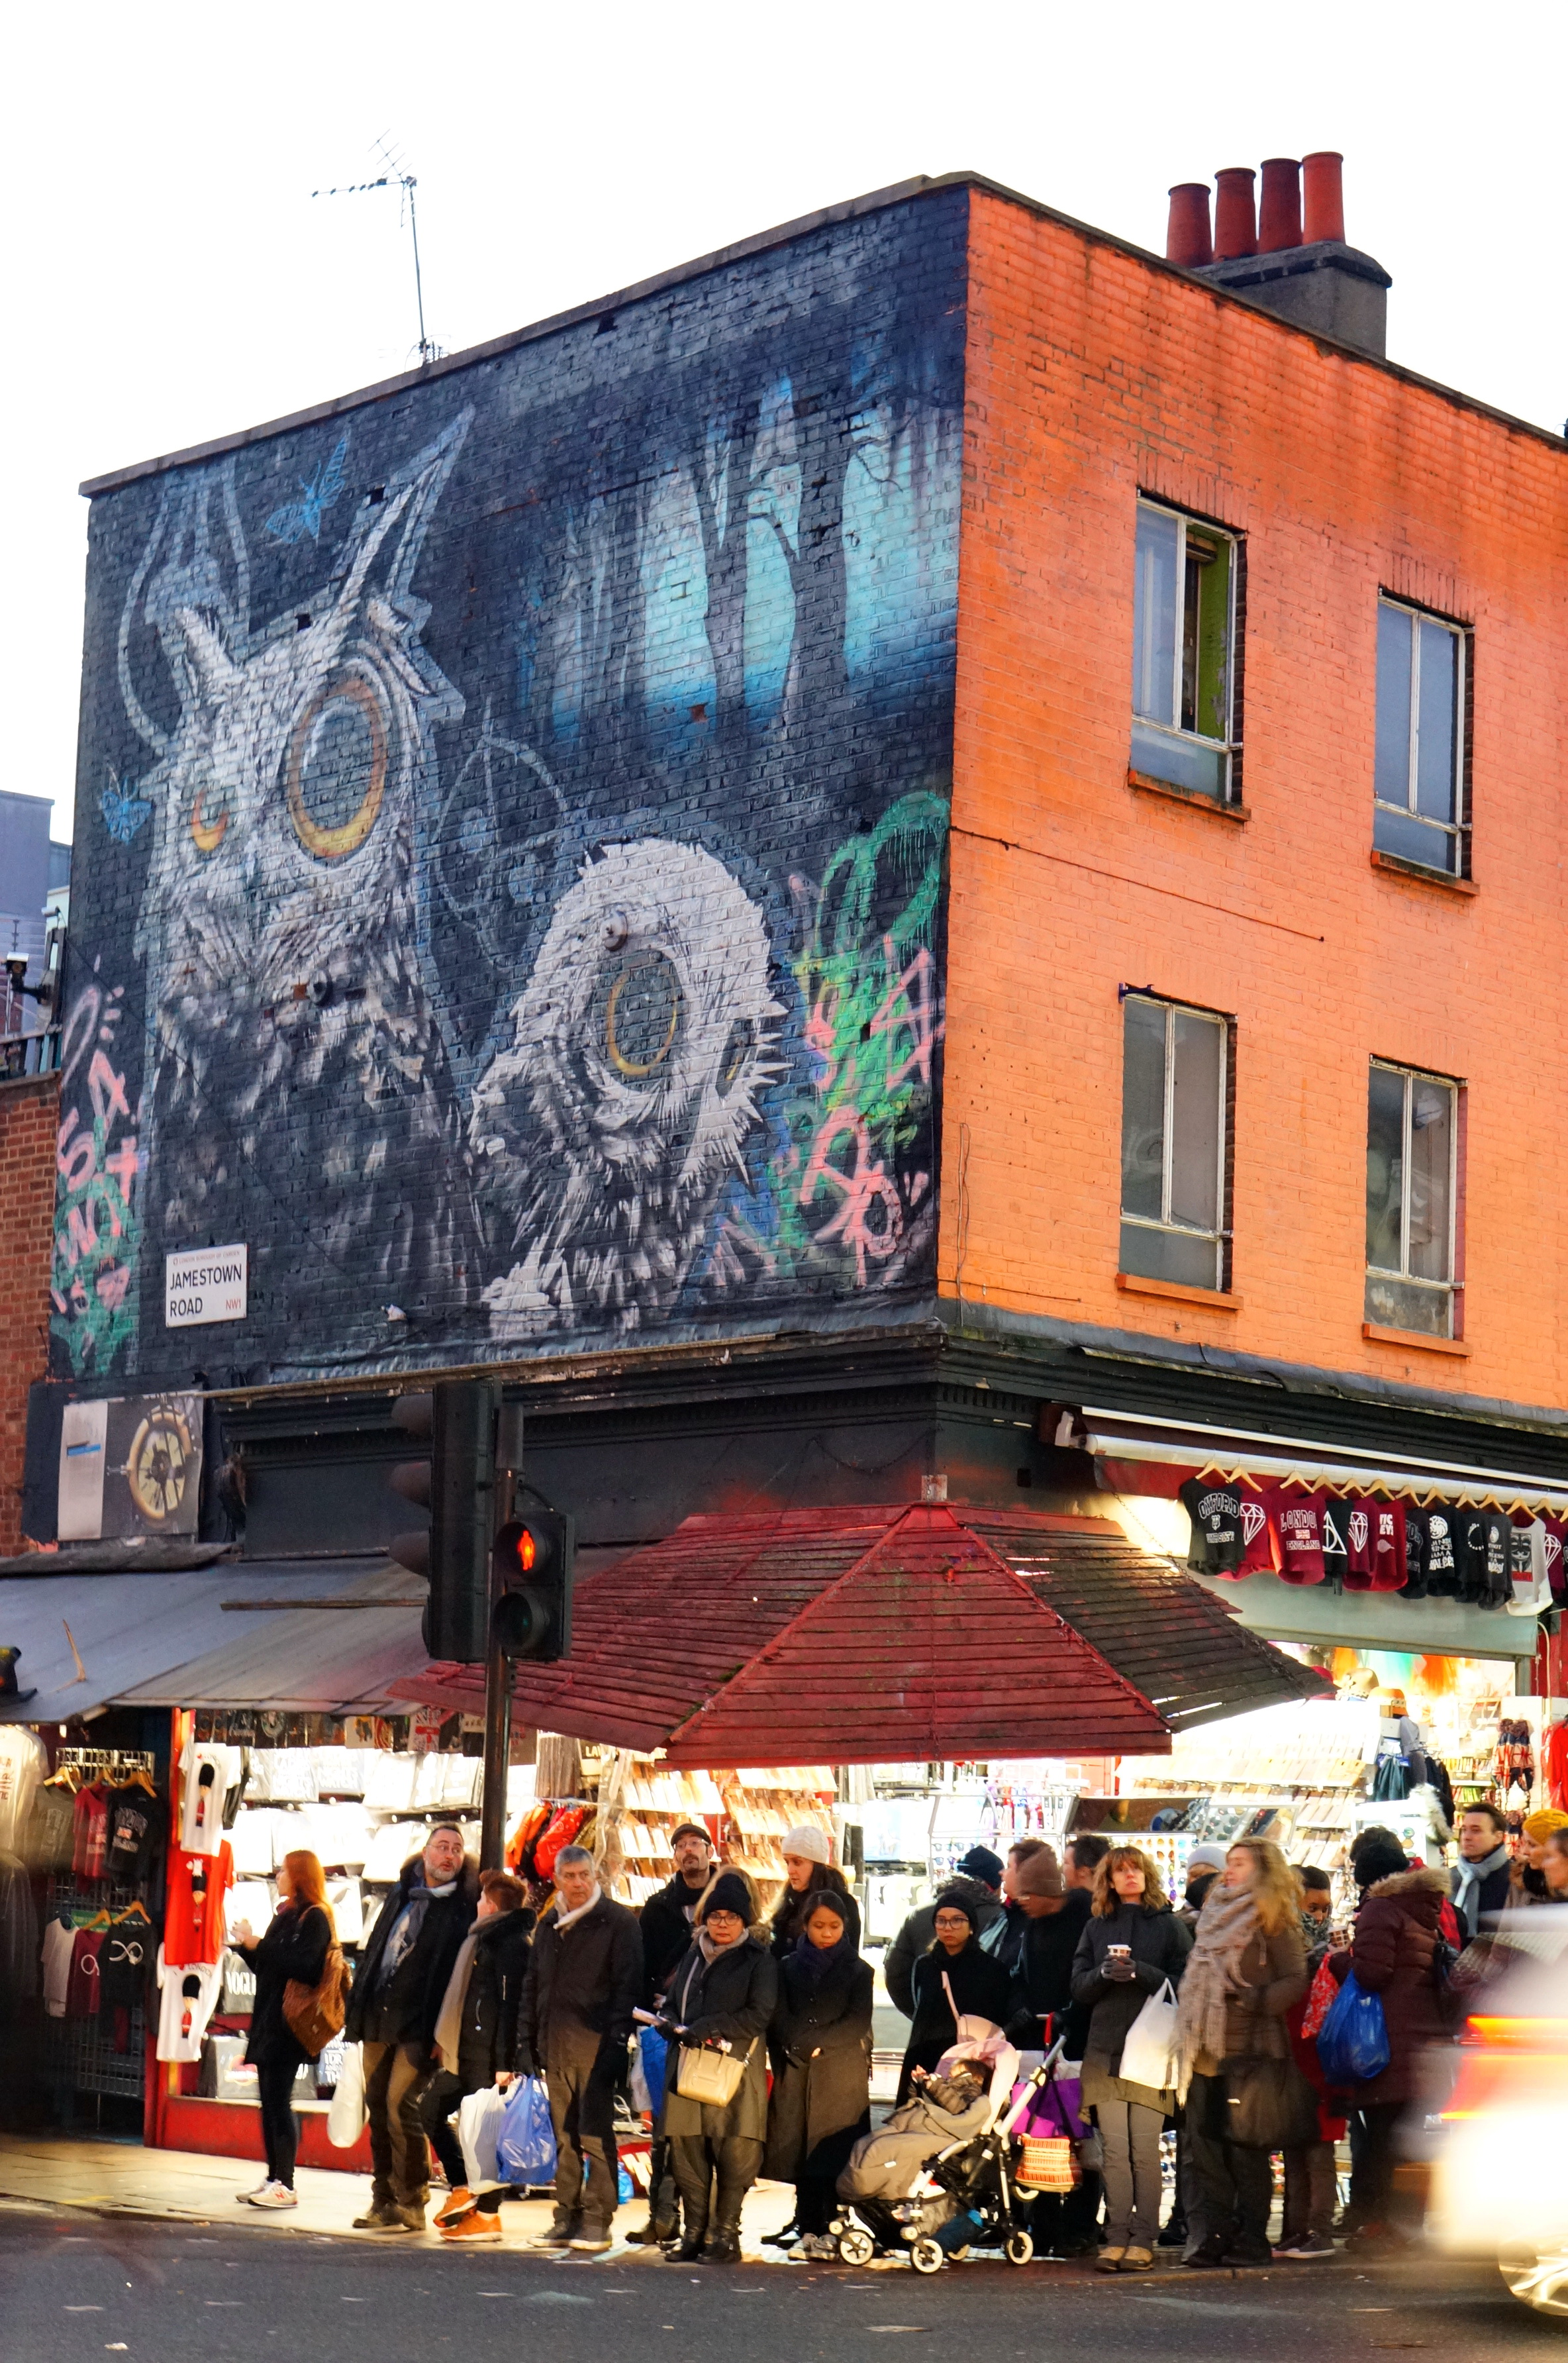 camden town, londres, london, street art, graffiti